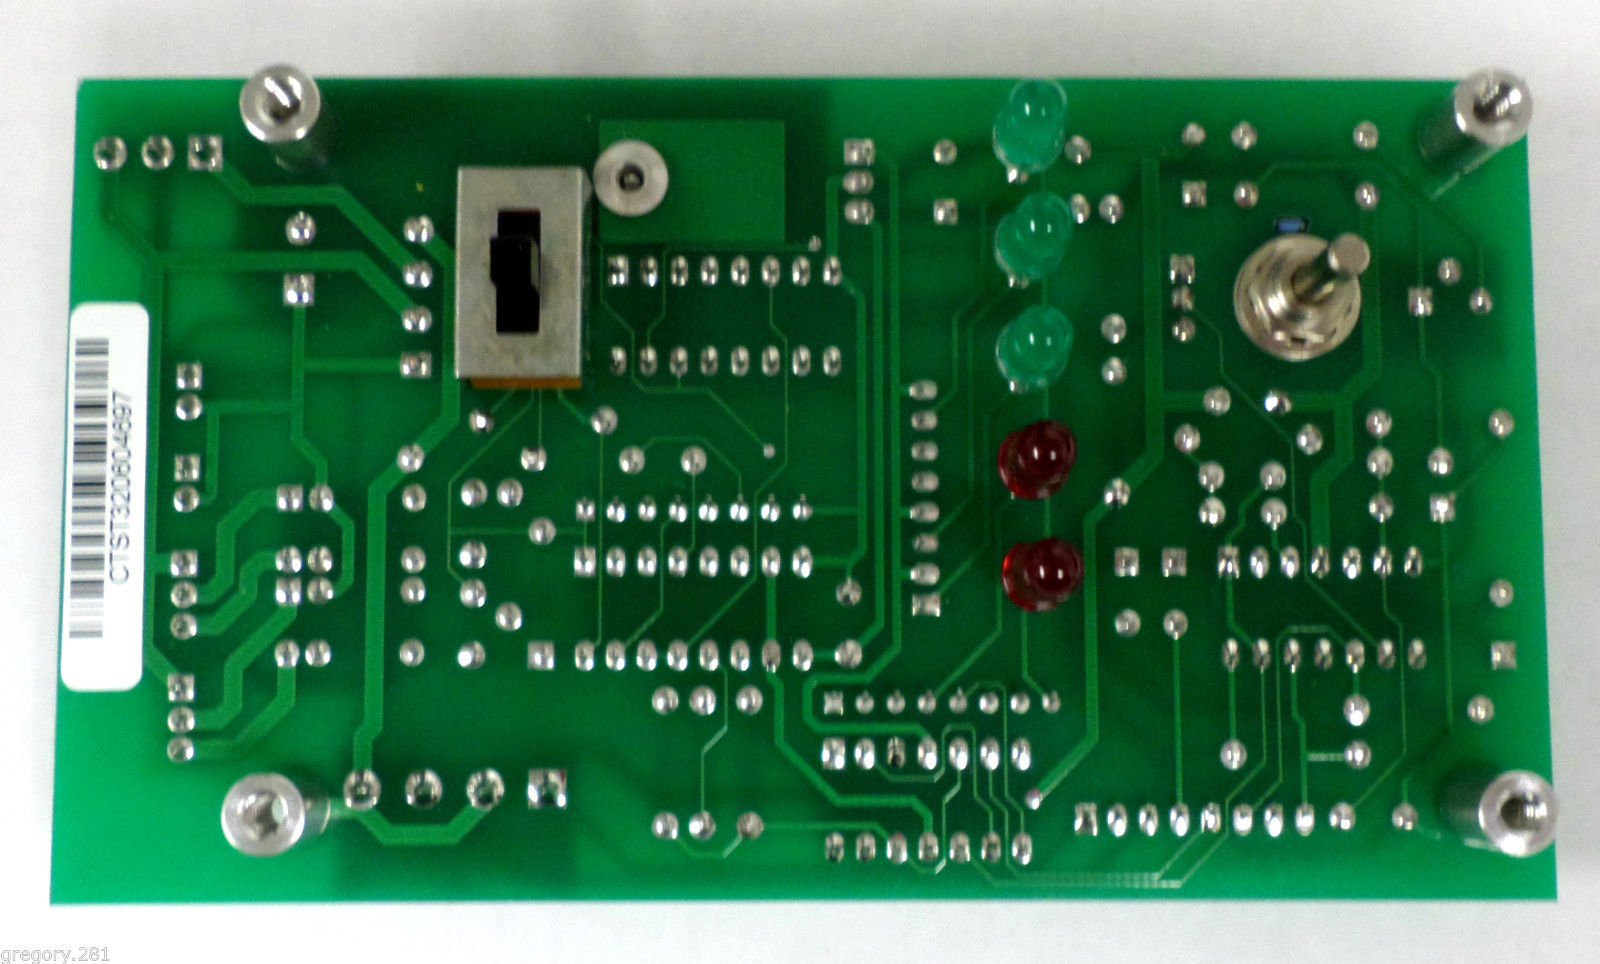 Pentair Circuit Board Best Electrical Wiring Diagram Details About Heater Part 472100 Ddtc Assembly Compool Pc Lx220 10809c Replacement Mastertemp 400 Lx100